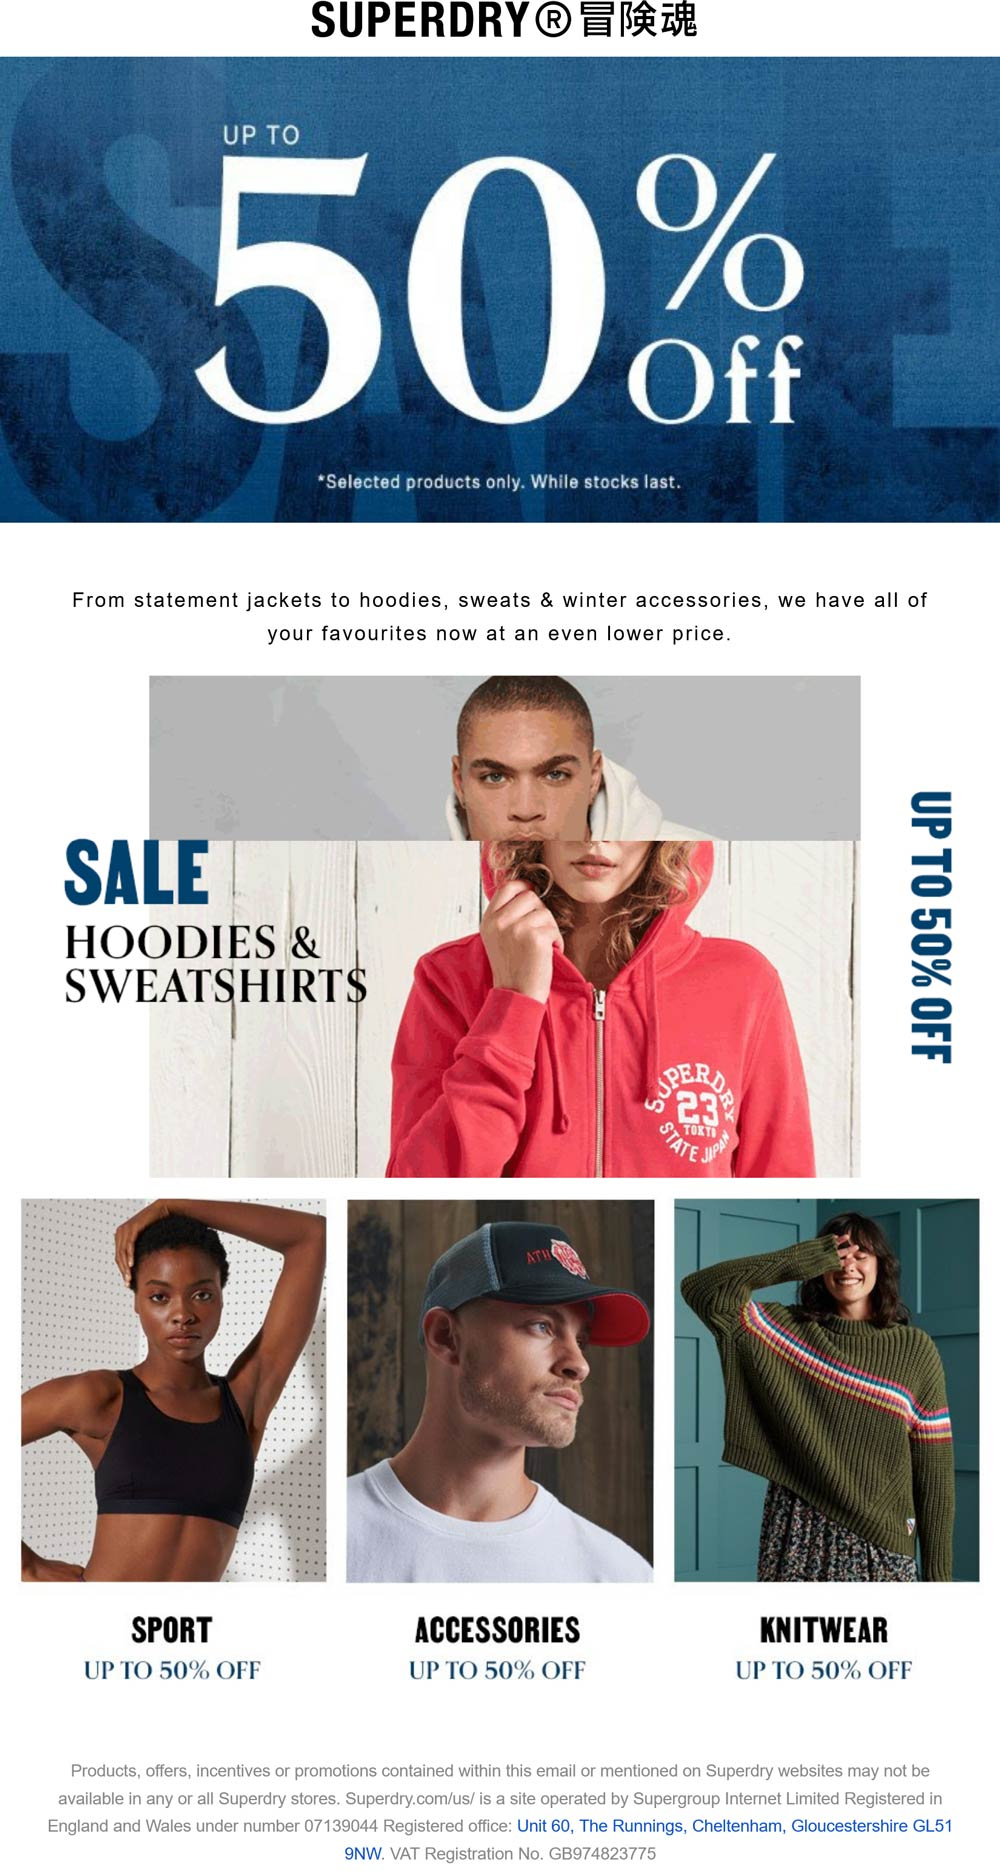 Superdry stores Coupon  50% off sale going on at Superdry #superdry